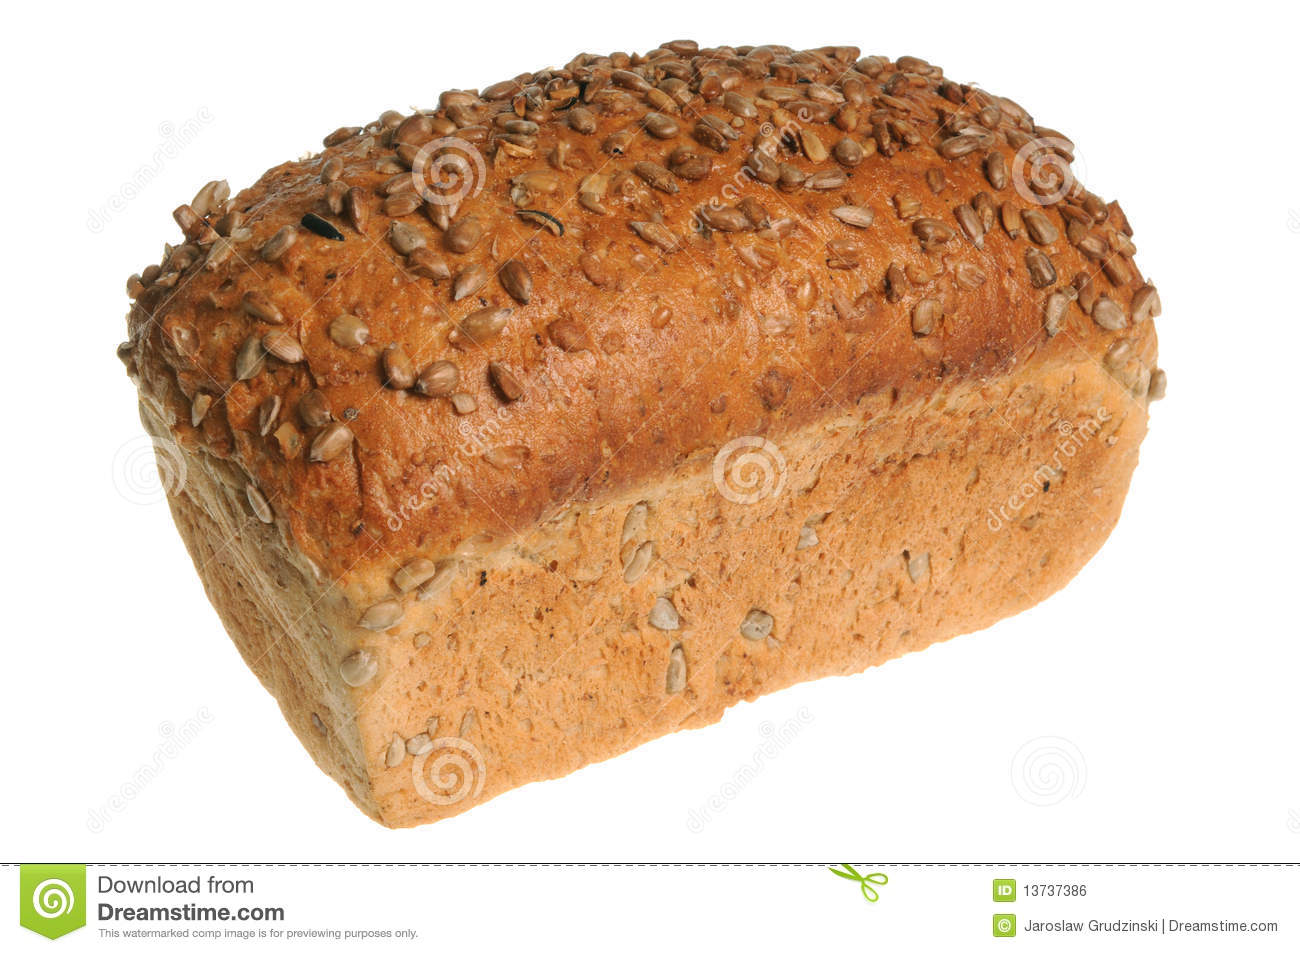 Brown Bread Royalty Free Stock Image - Image: 13737386